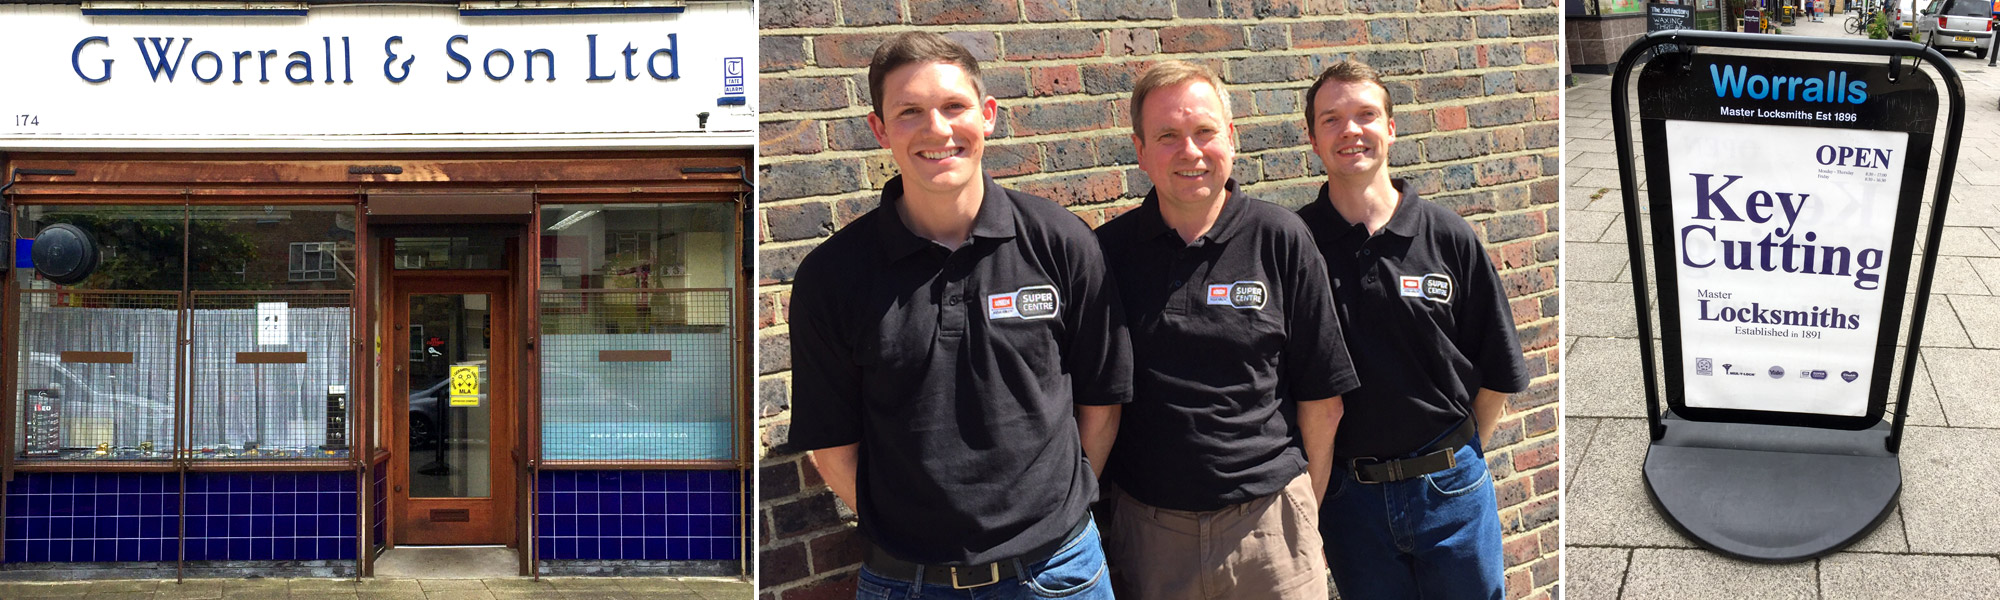 Contact the professional locksmiths at G Worrall & Son